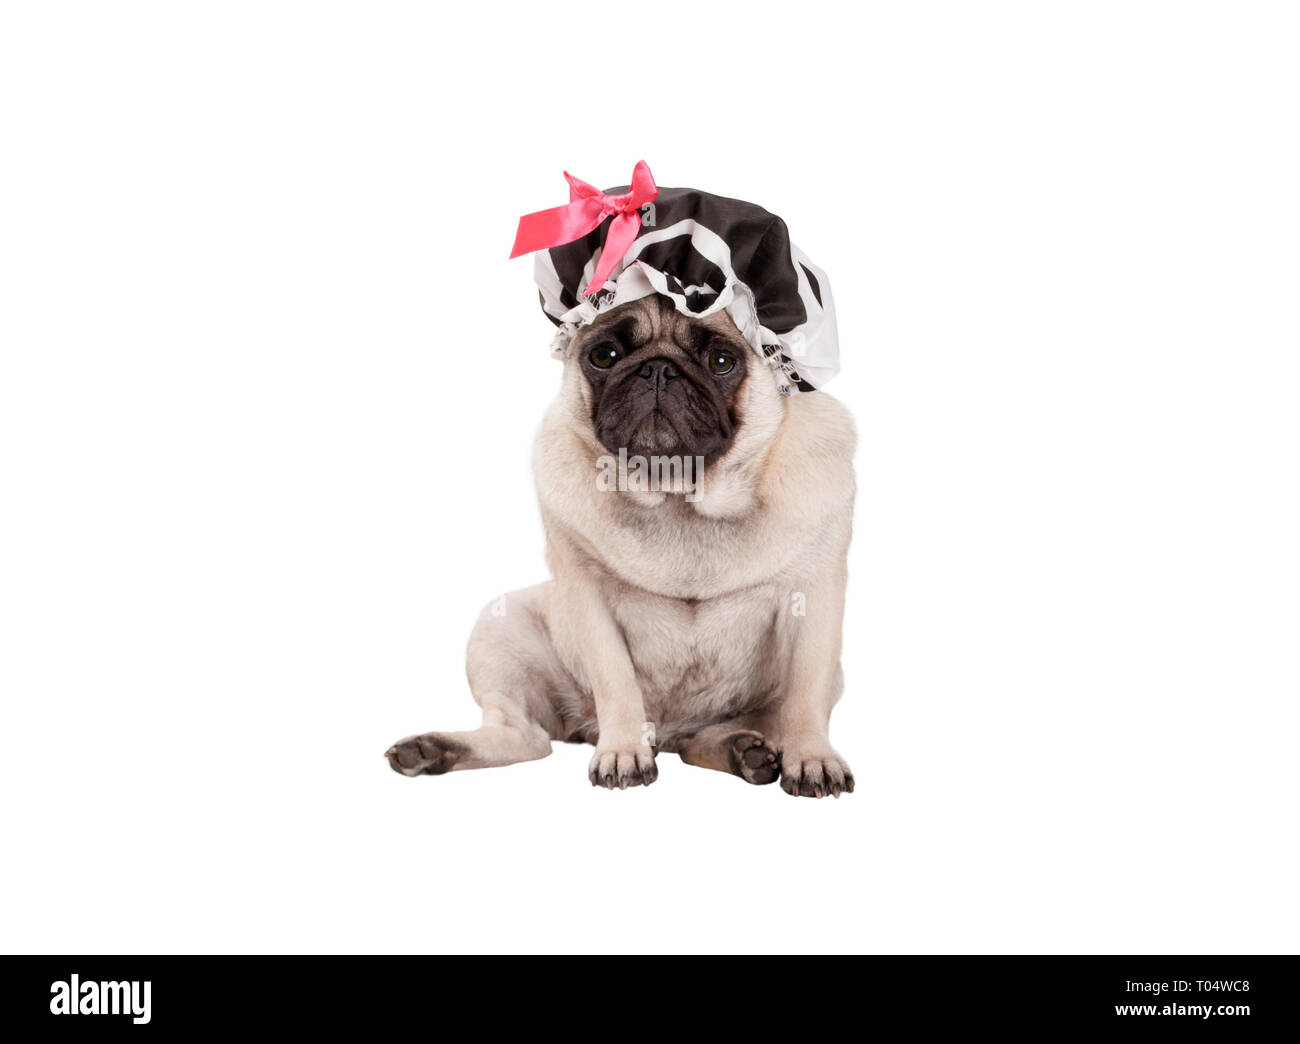 unhappy pug puppy dog with shower cap, sitting down, ready for taking a bath, isolated on white background Stock Photo